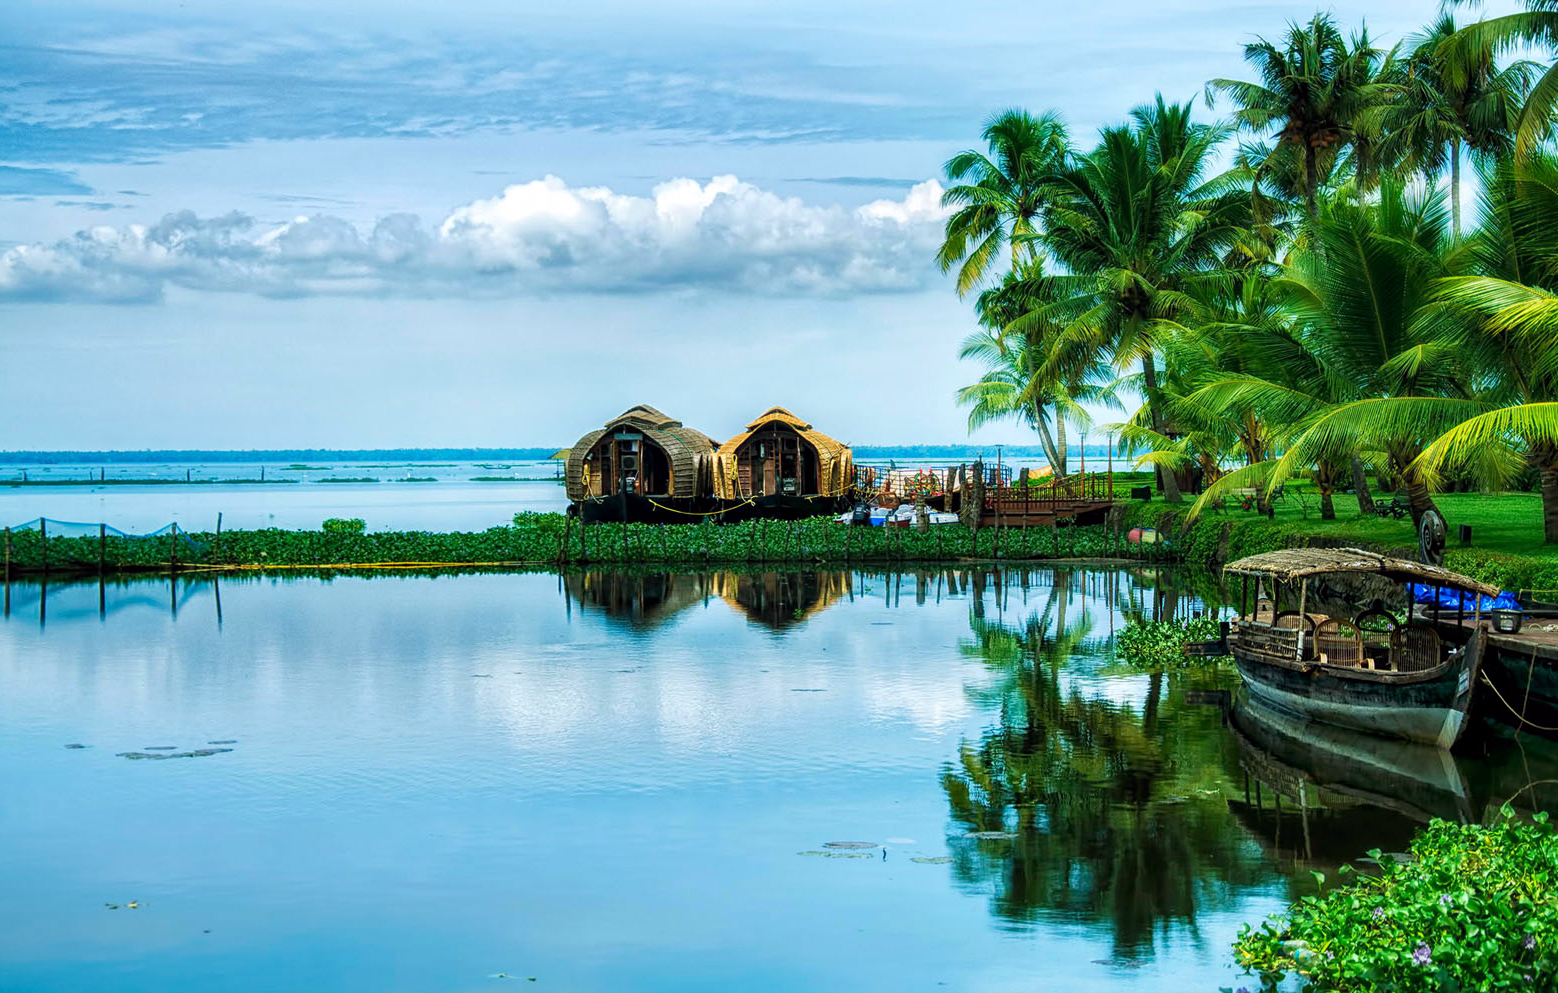 20 Best Romantic Honeymoon Places In South India To Visit In 2018